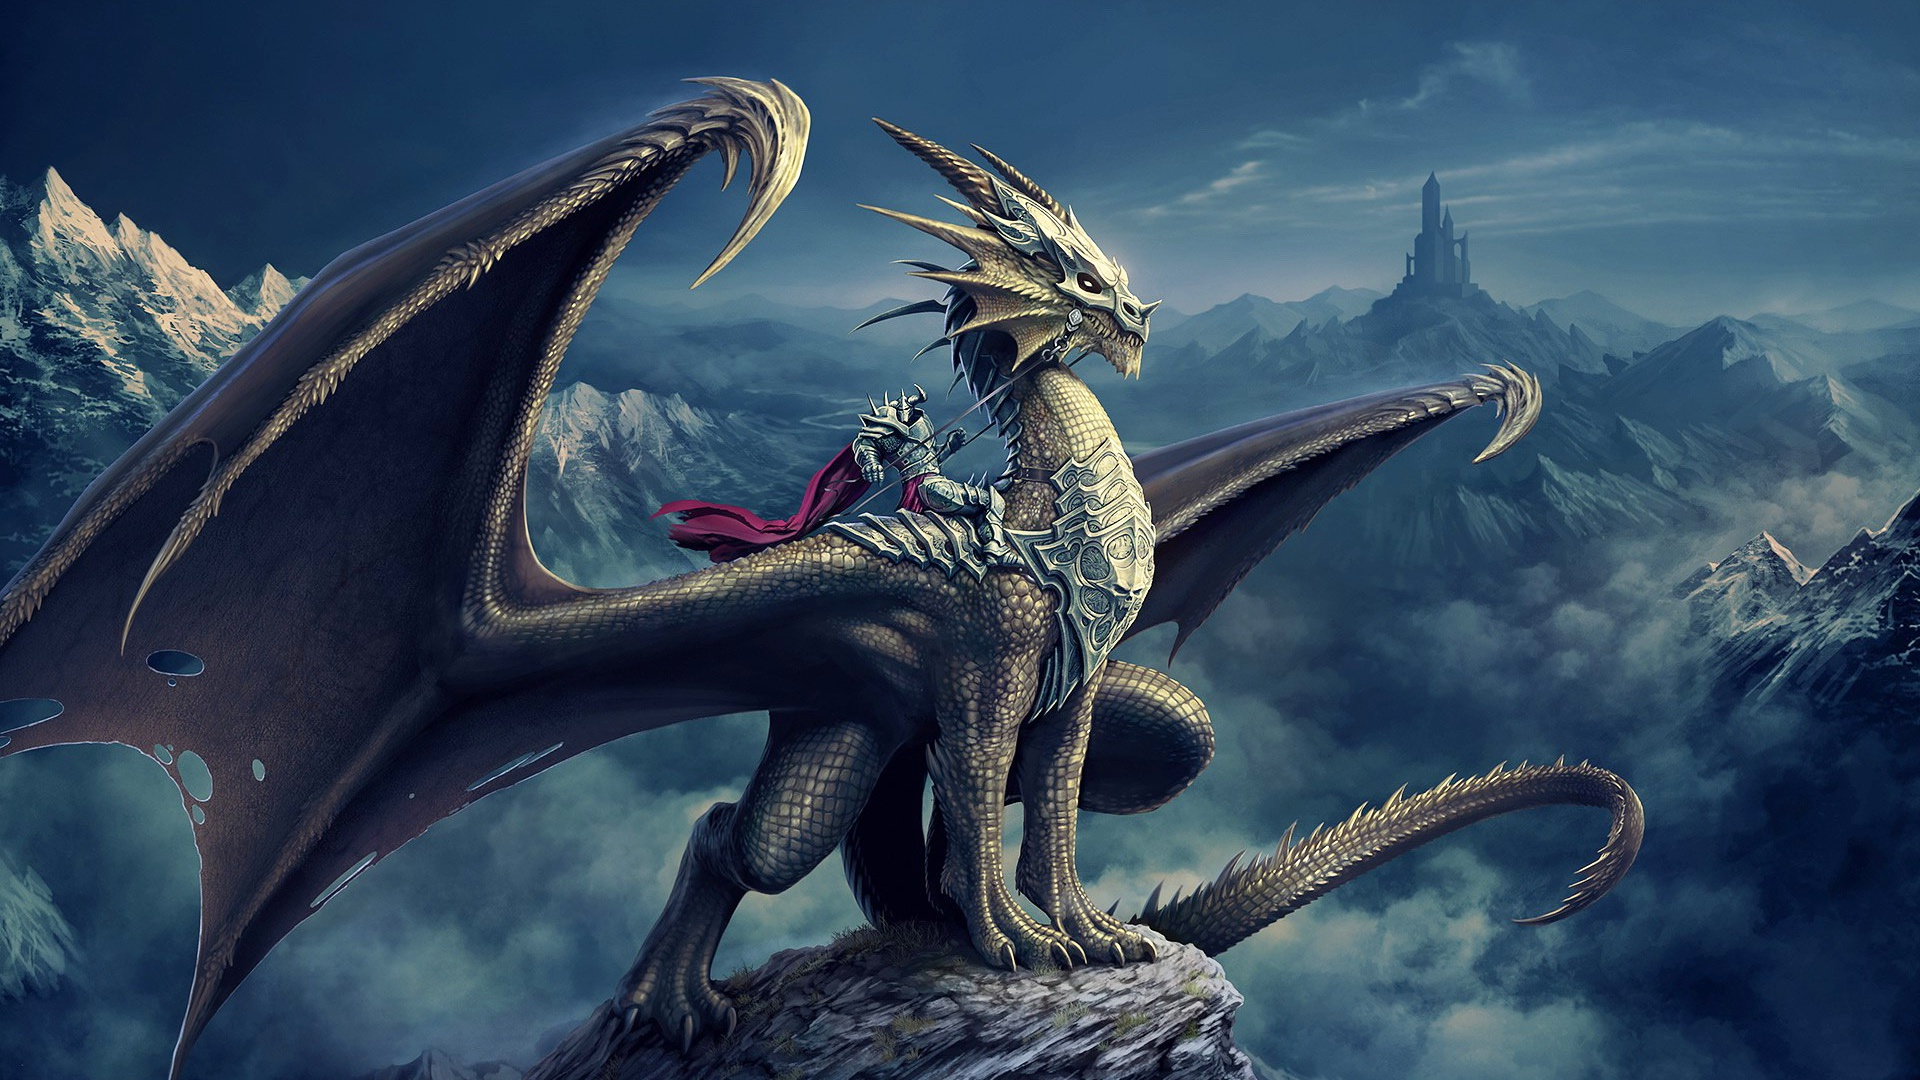 Black Dragon Wallpaper HD